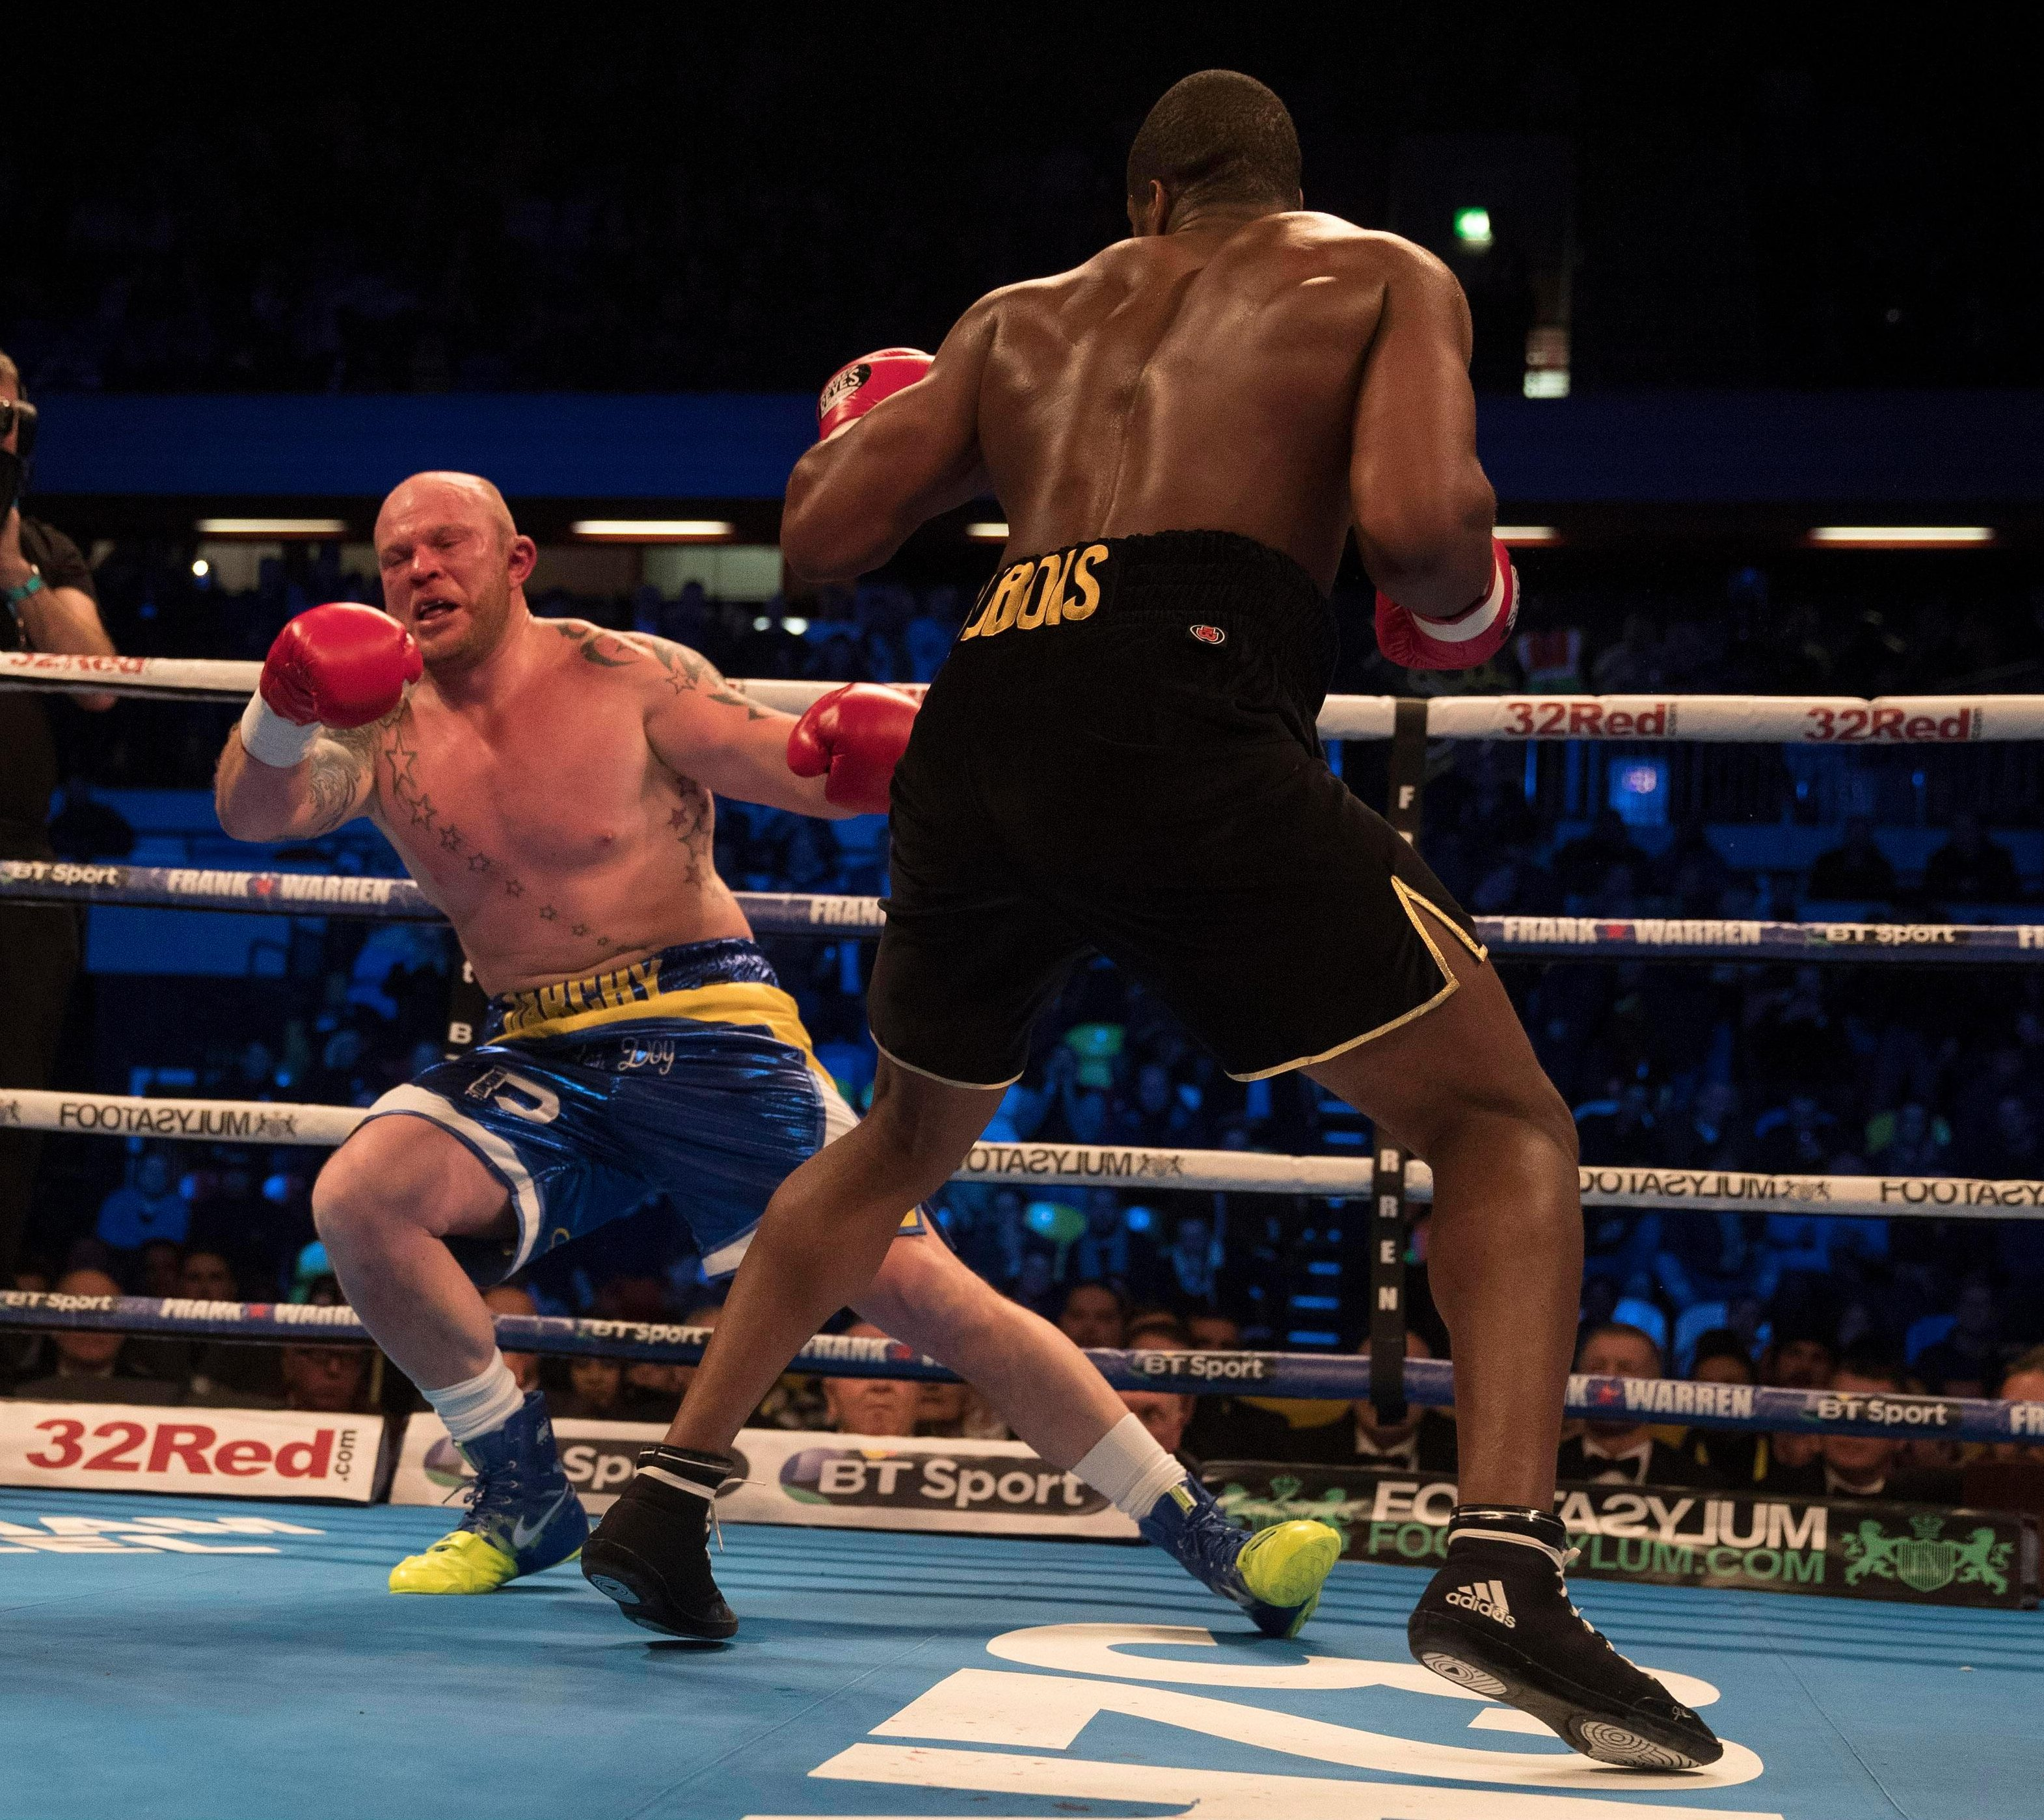 Daniel Dubois has the potential to add to the exciting array of British heavyweight talent on top of the world